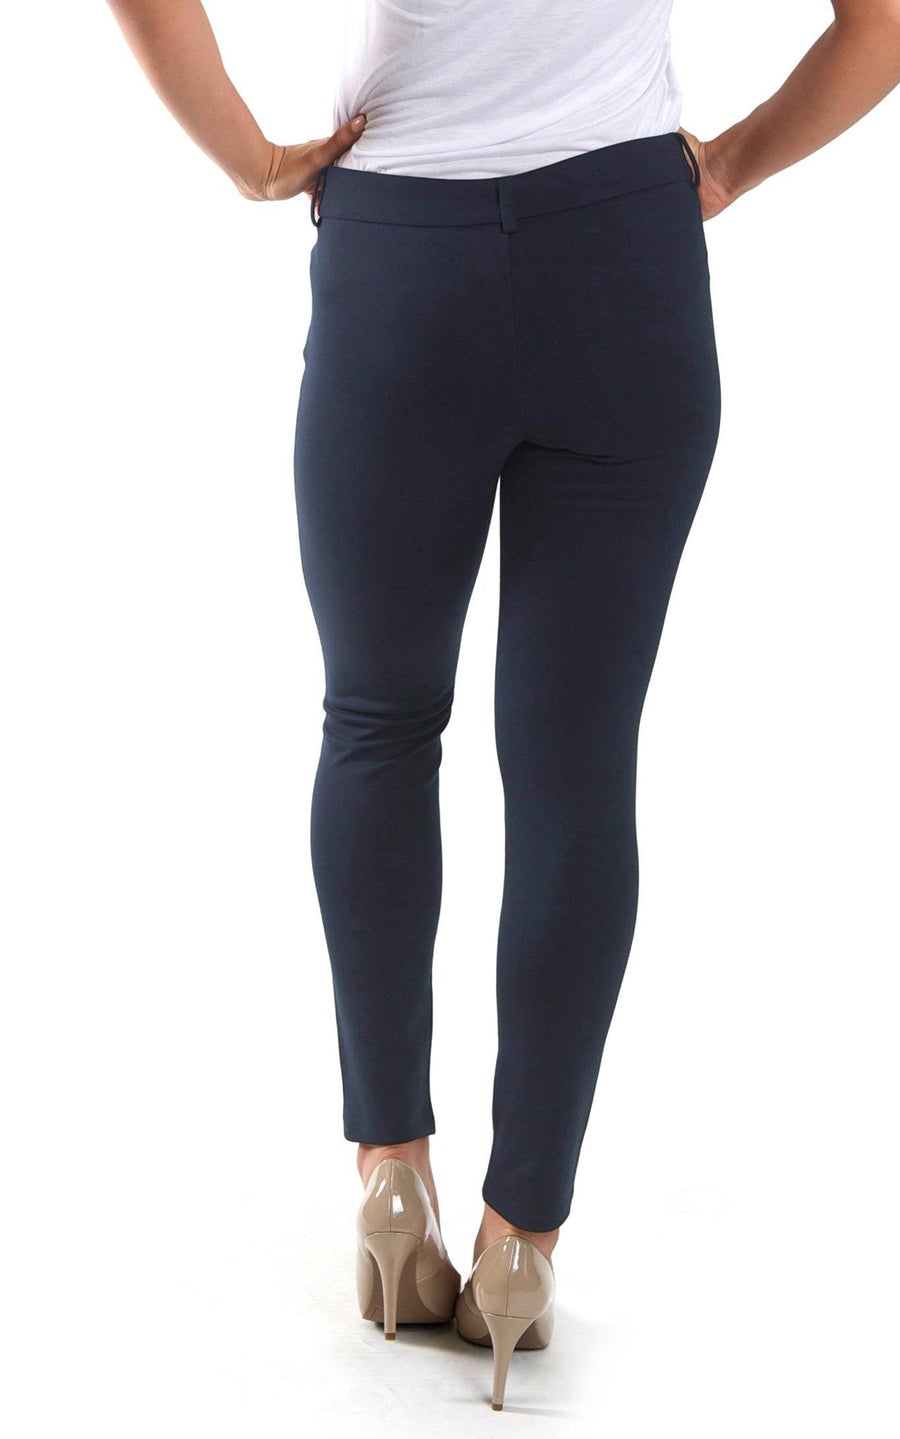 All For Color-Navy Jo Tailored Pant - FINAL SALE-Bottoms